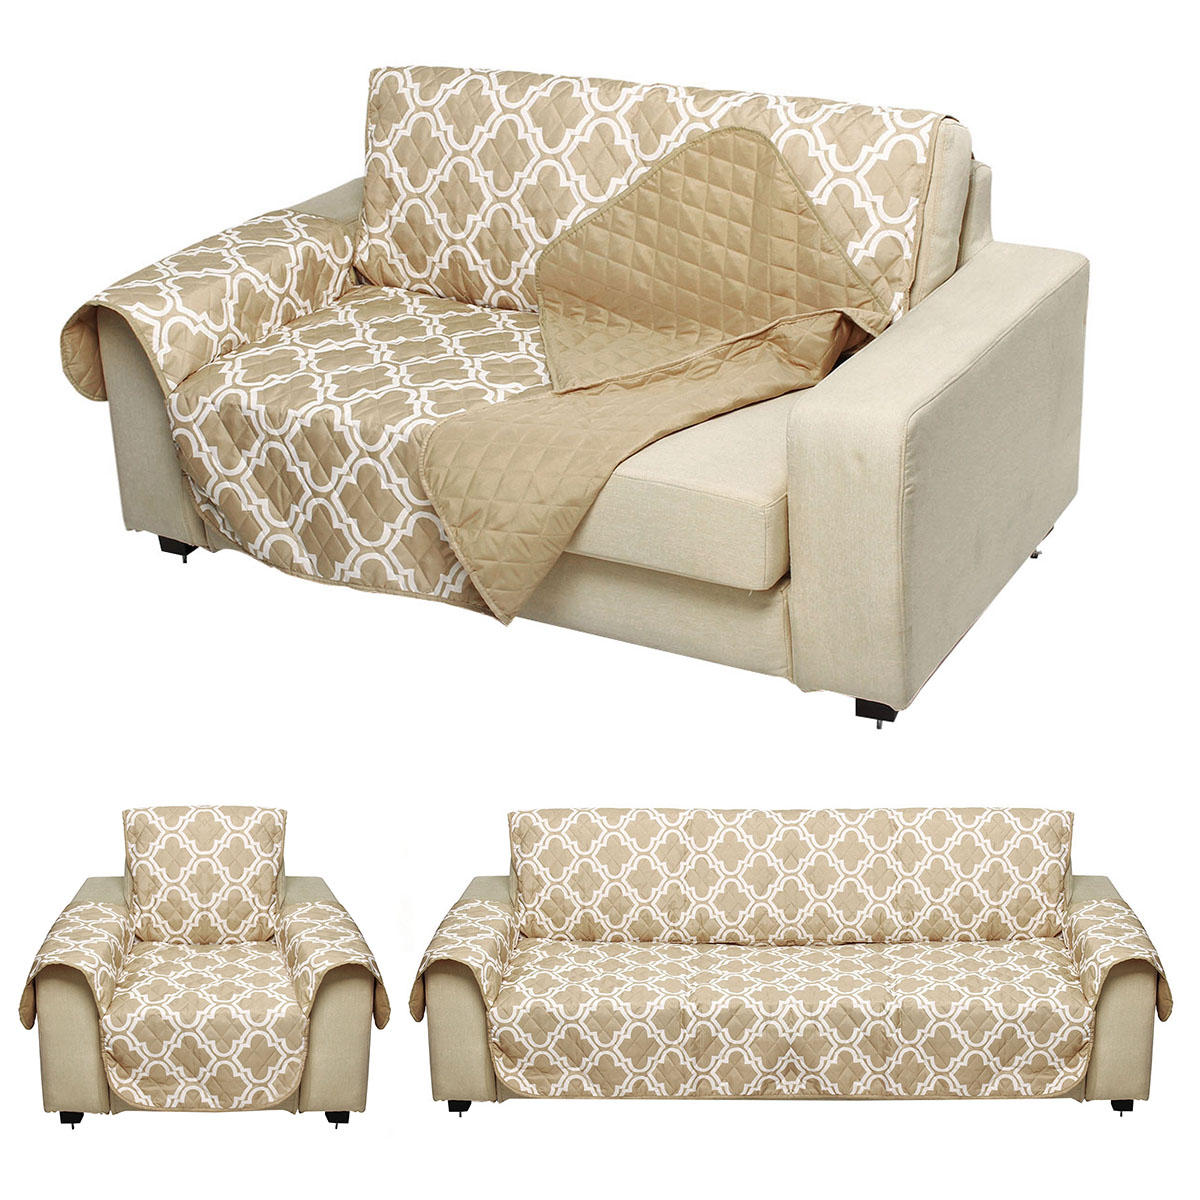 1 2 3 Seat Pet Dog Cat Sofa Couch Cover